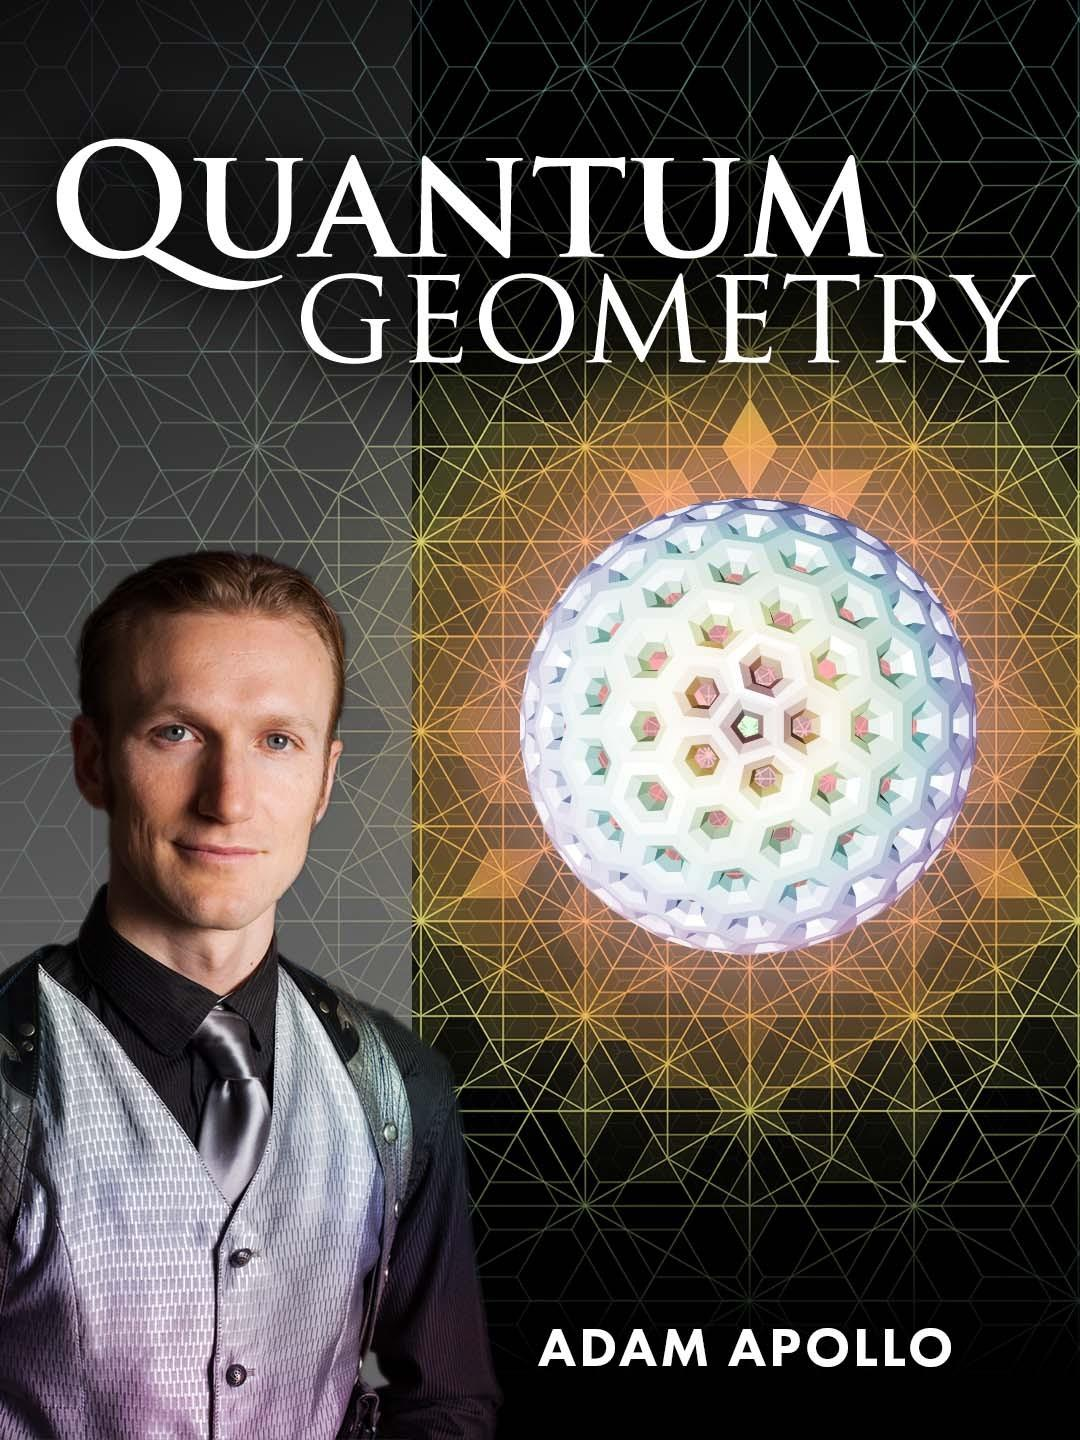 Quantum Geometry, a Resonance Academy Elective from faculty member, Adam Apollo